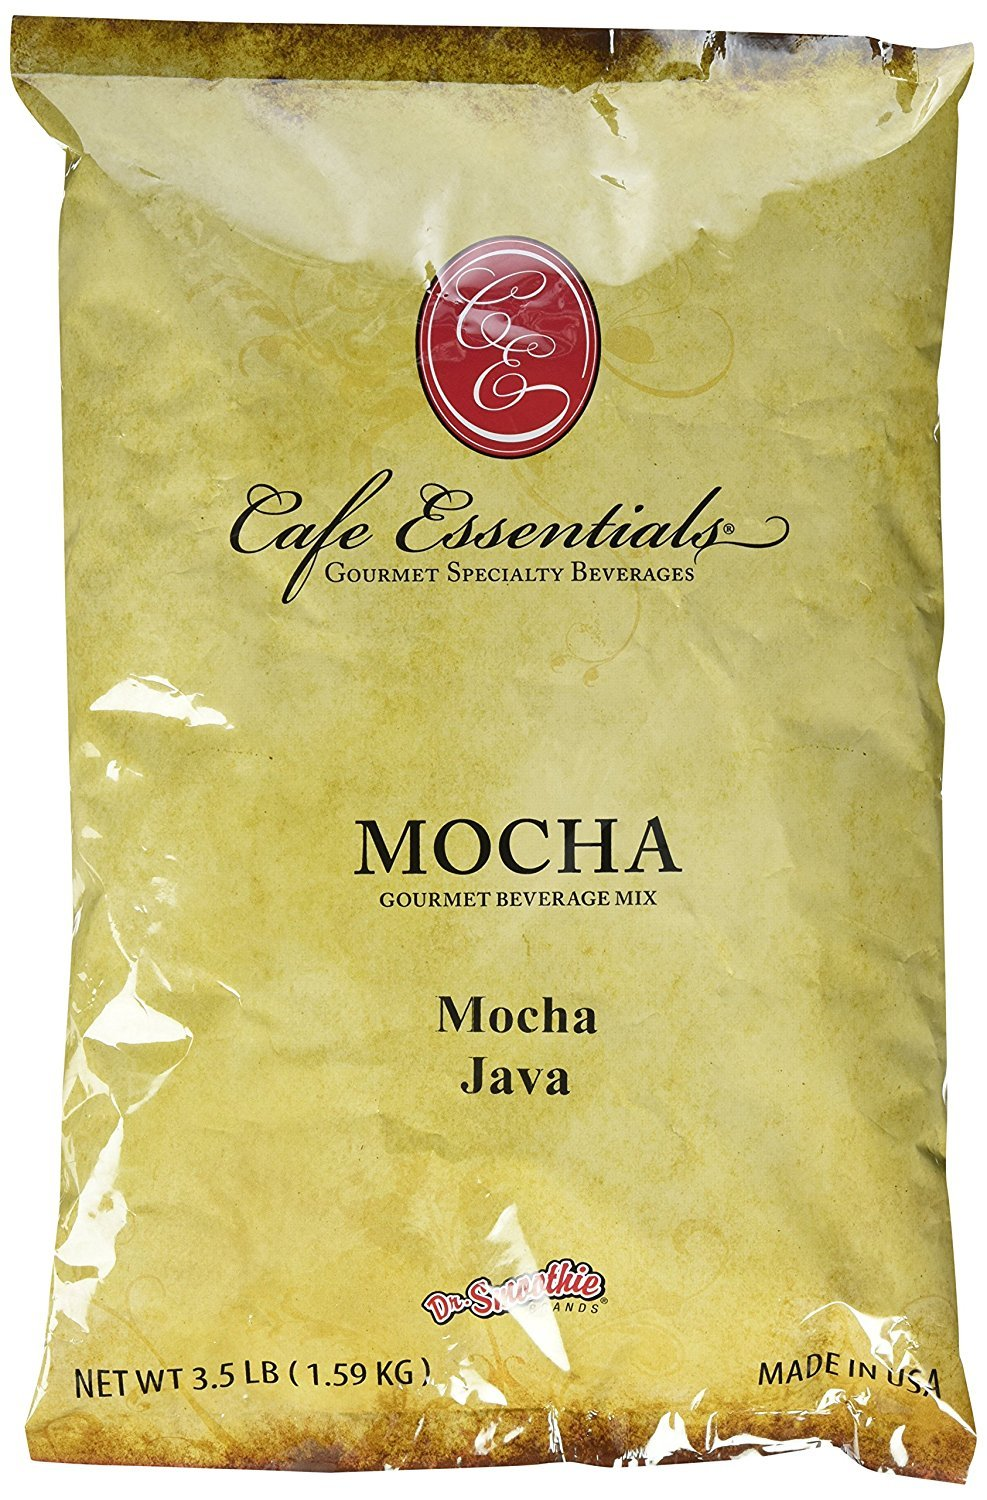 Mocha Java Beverage Mix, 2-PACK SPECIAL (2 / 3.5lb Bags), Cafe Essentials